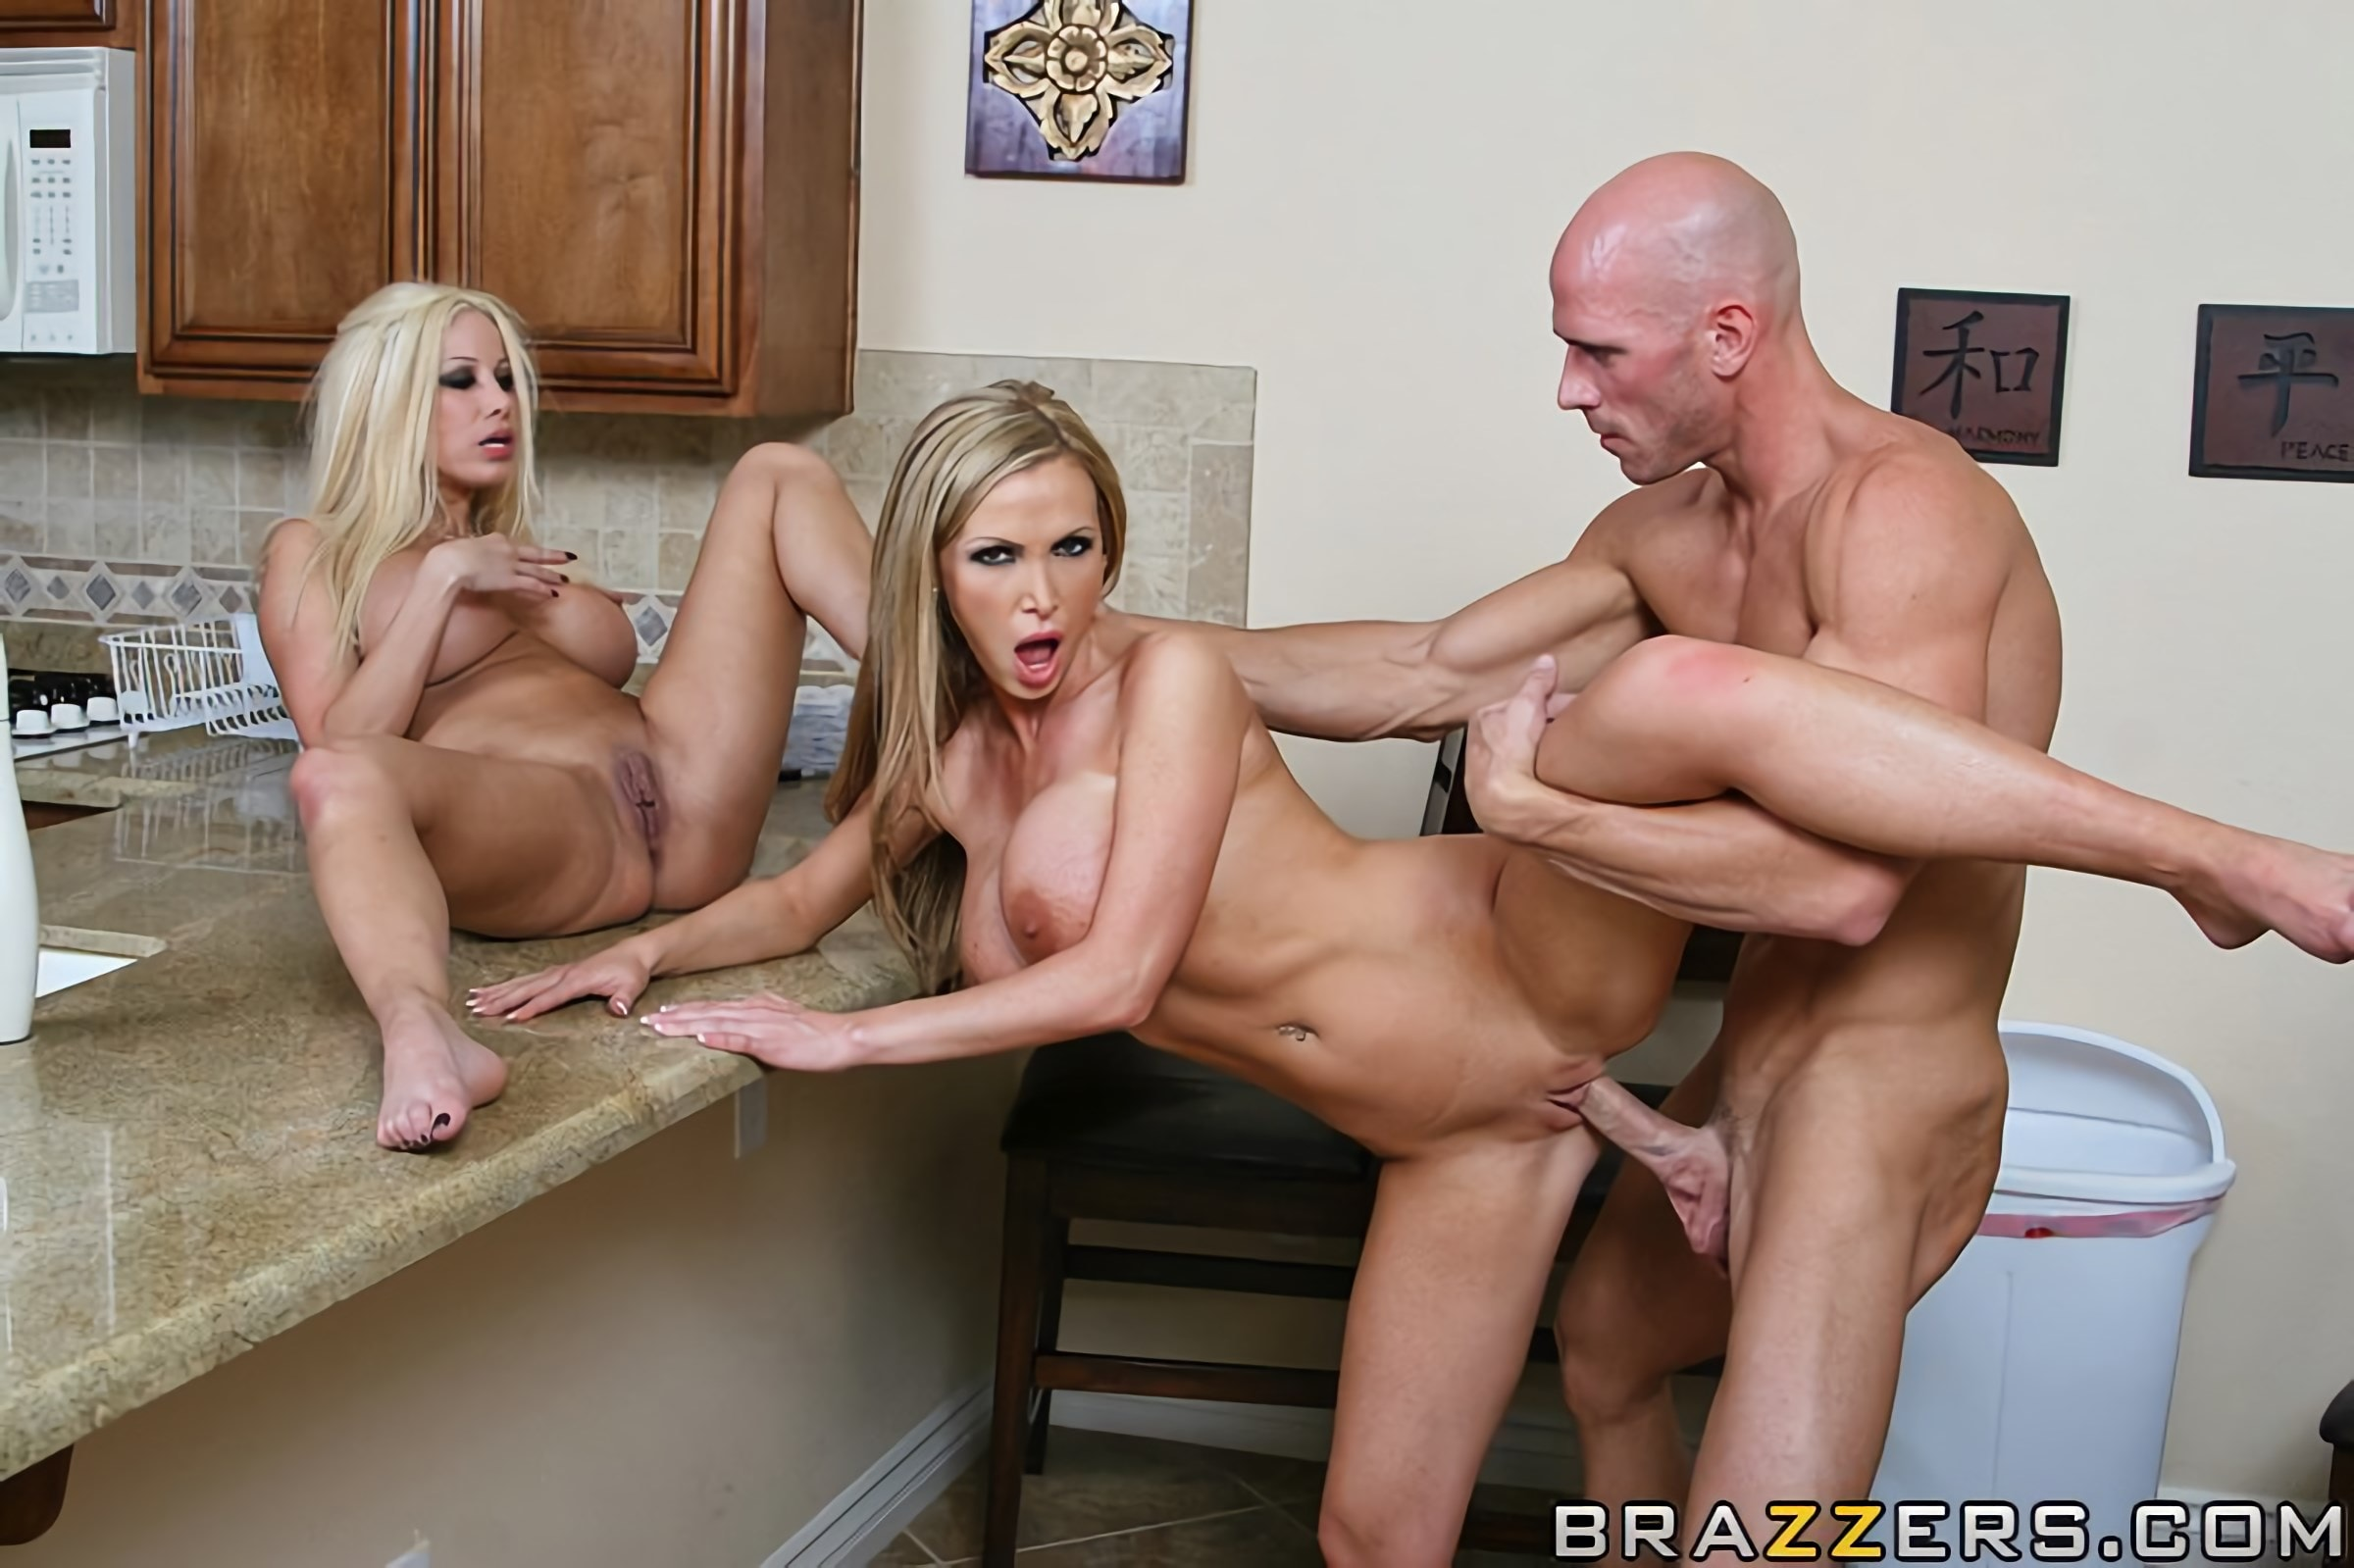 Nikki Benz - The Impostor | Picture (13)